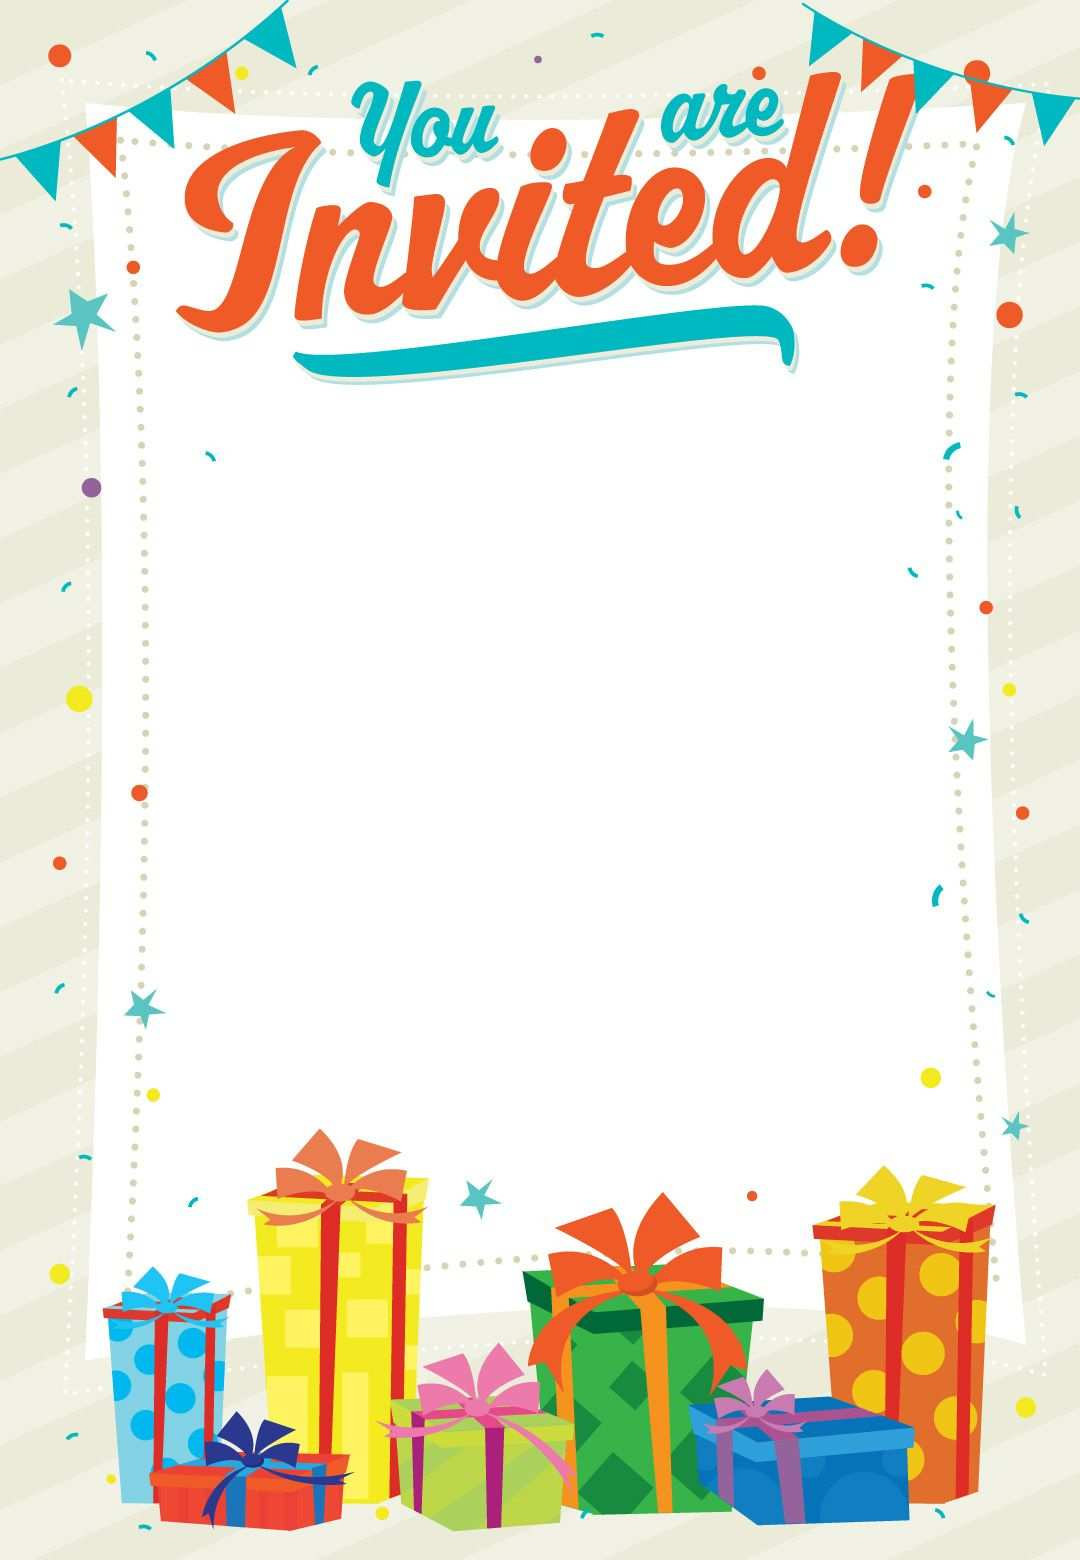 13 40Th Birthday Card Template Free in Word by 40Th Birthday Card Template Free